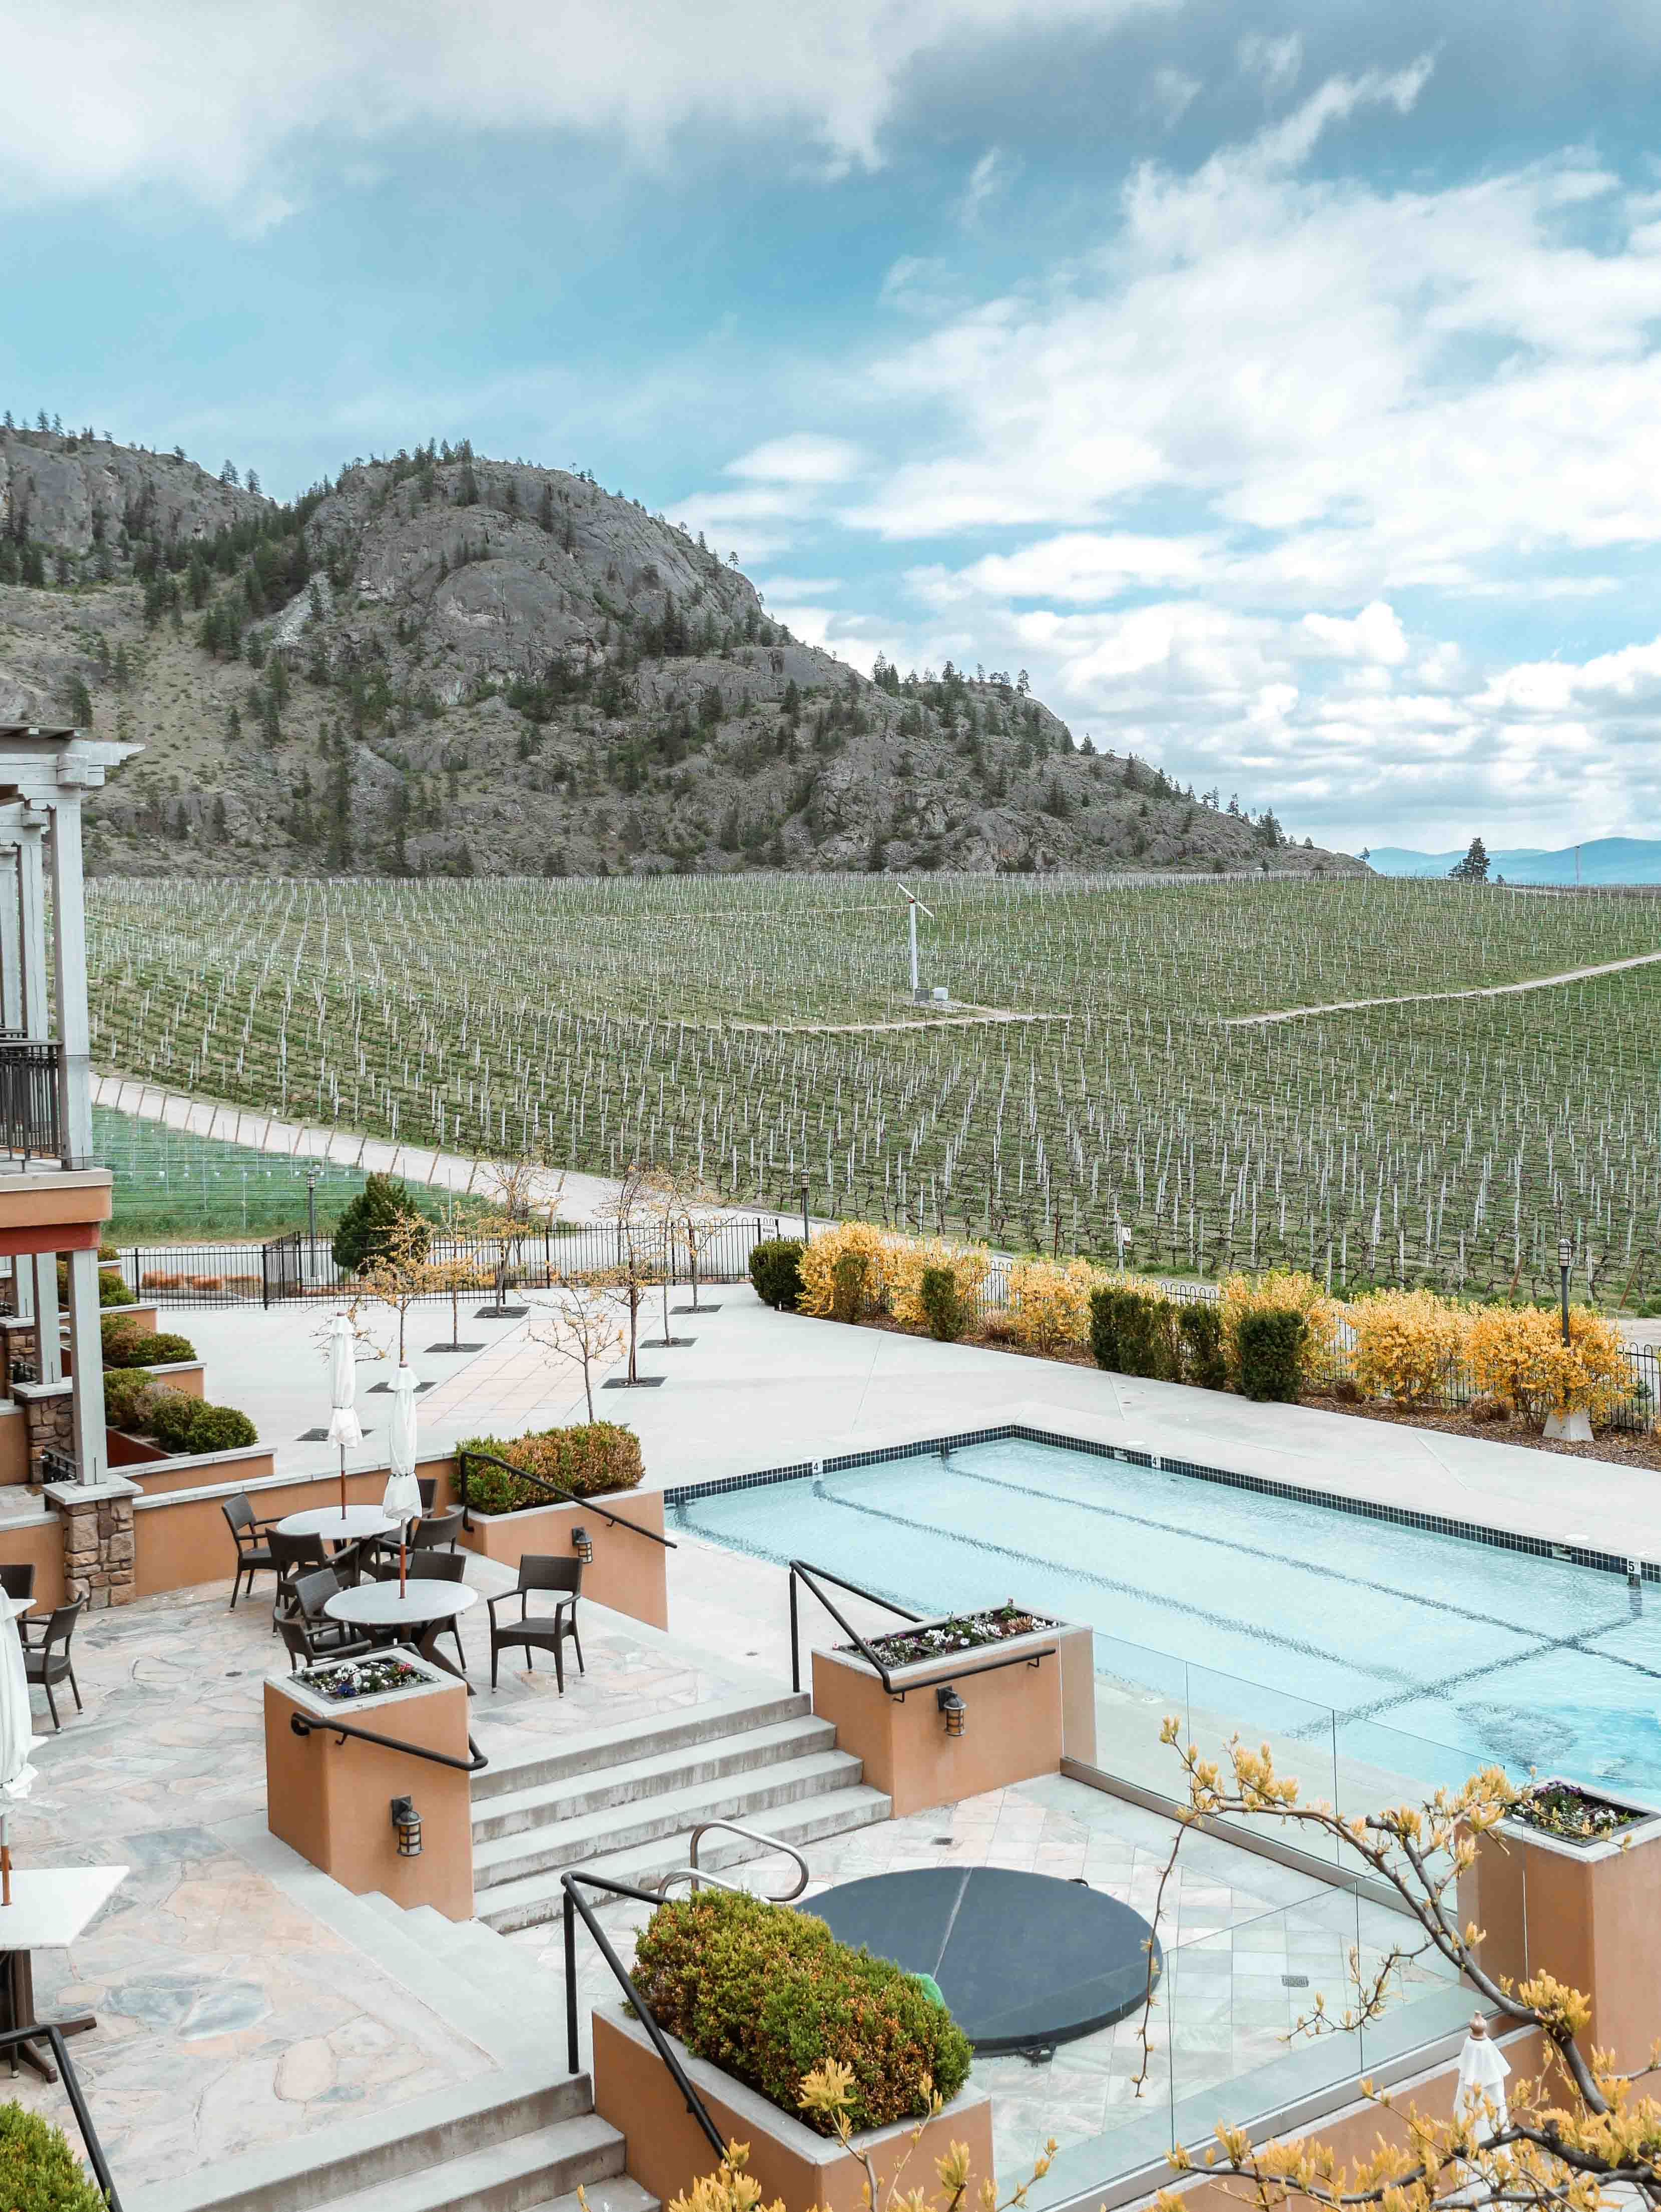 Tips For Planning A Wine Getaway To Osoyoos